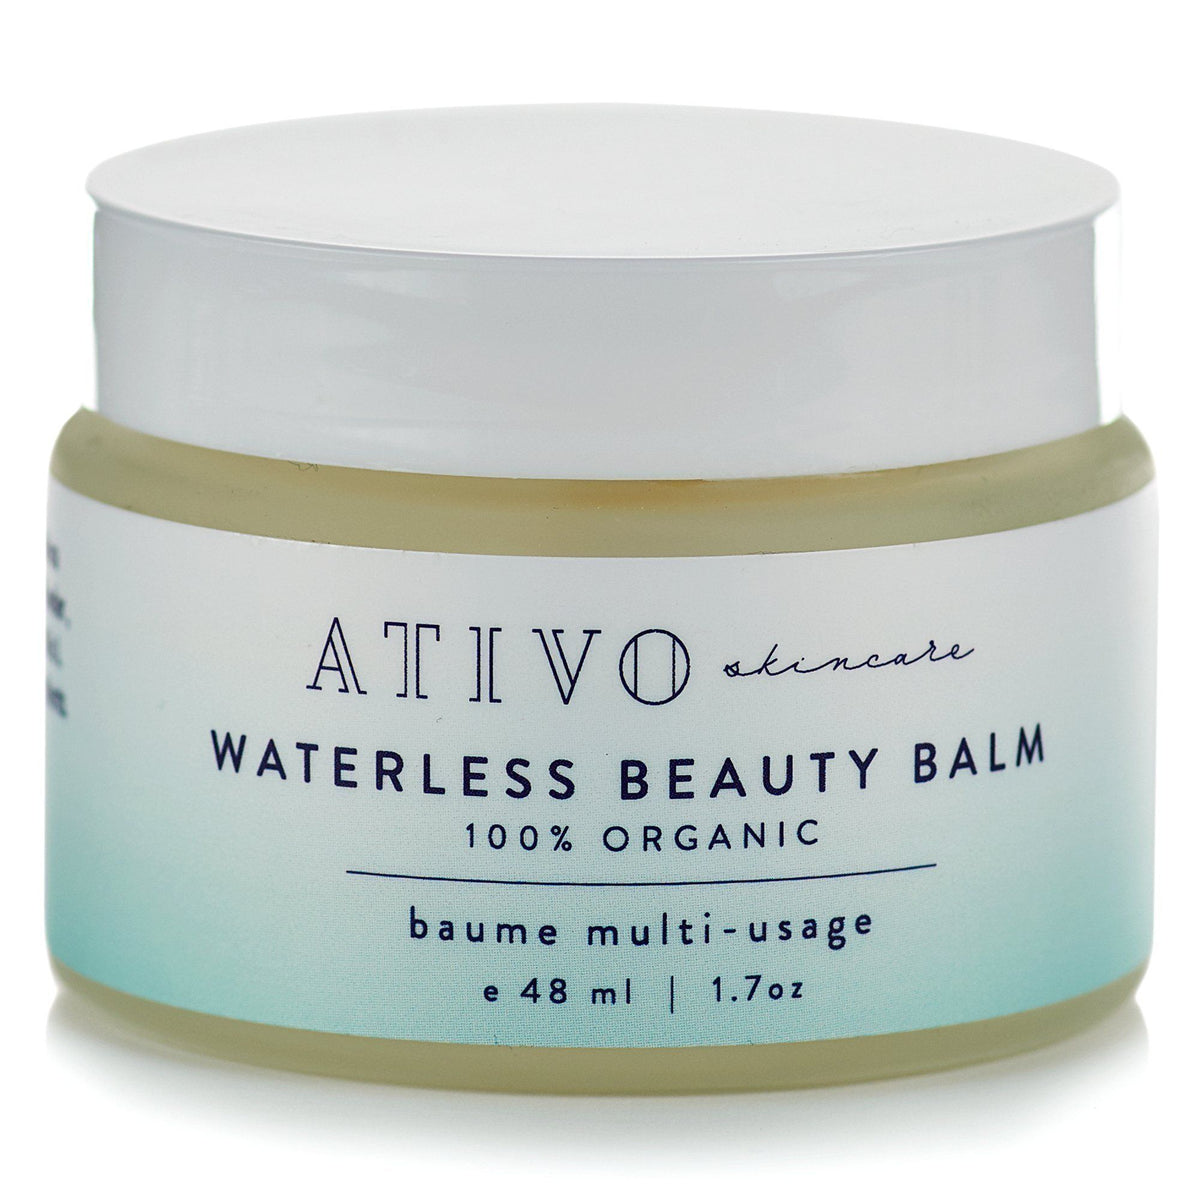 Waterless Beauty Balm - Ativo Skincare